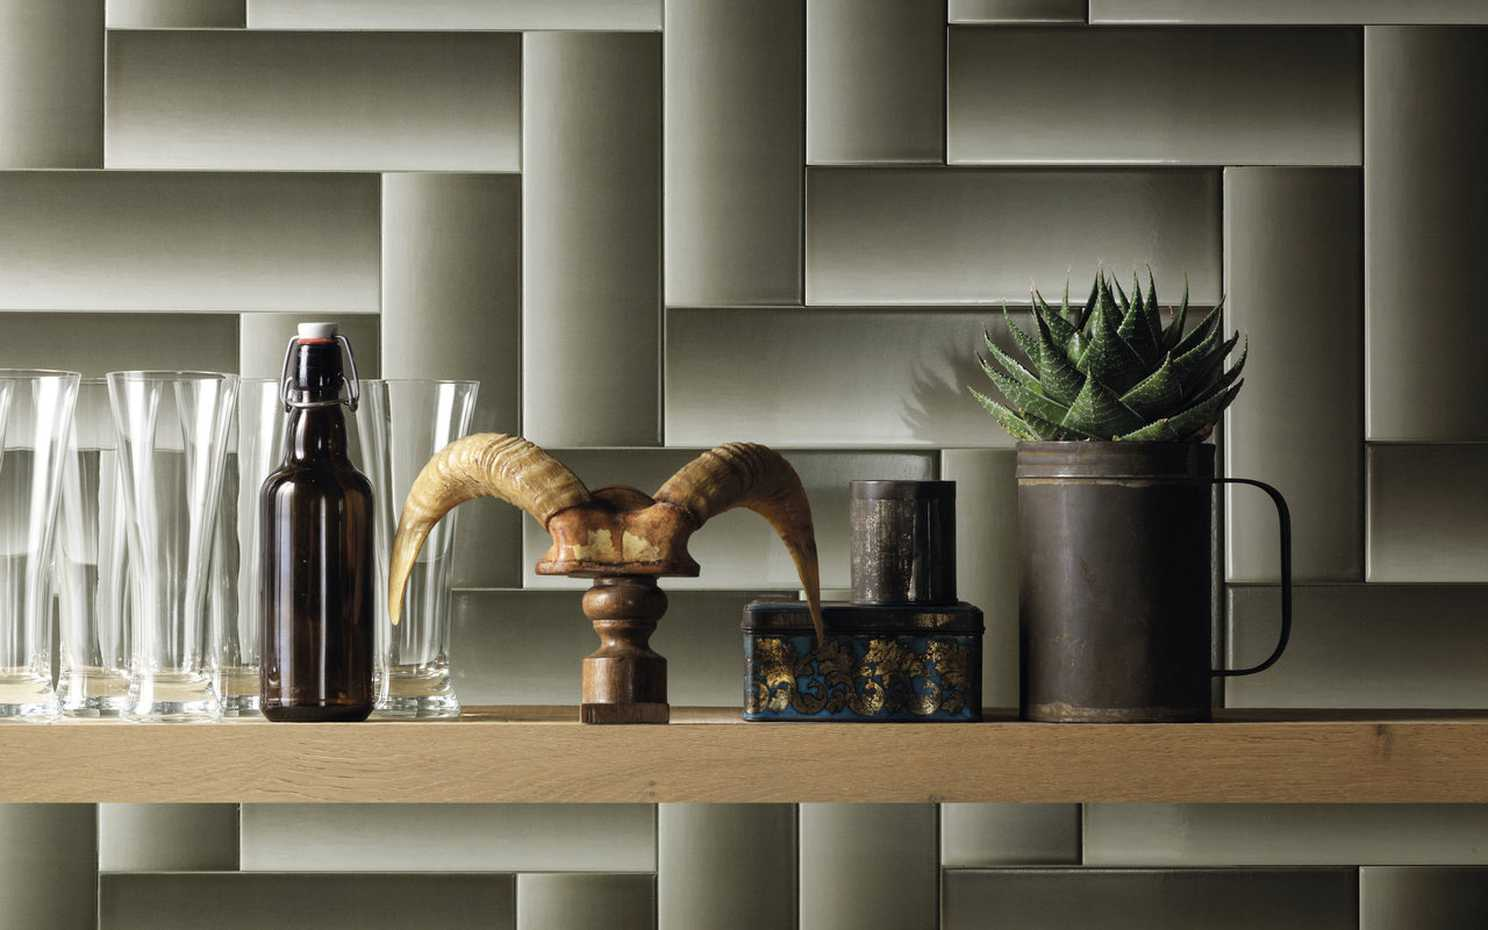 Shades of Blinds  by Iris product image 5